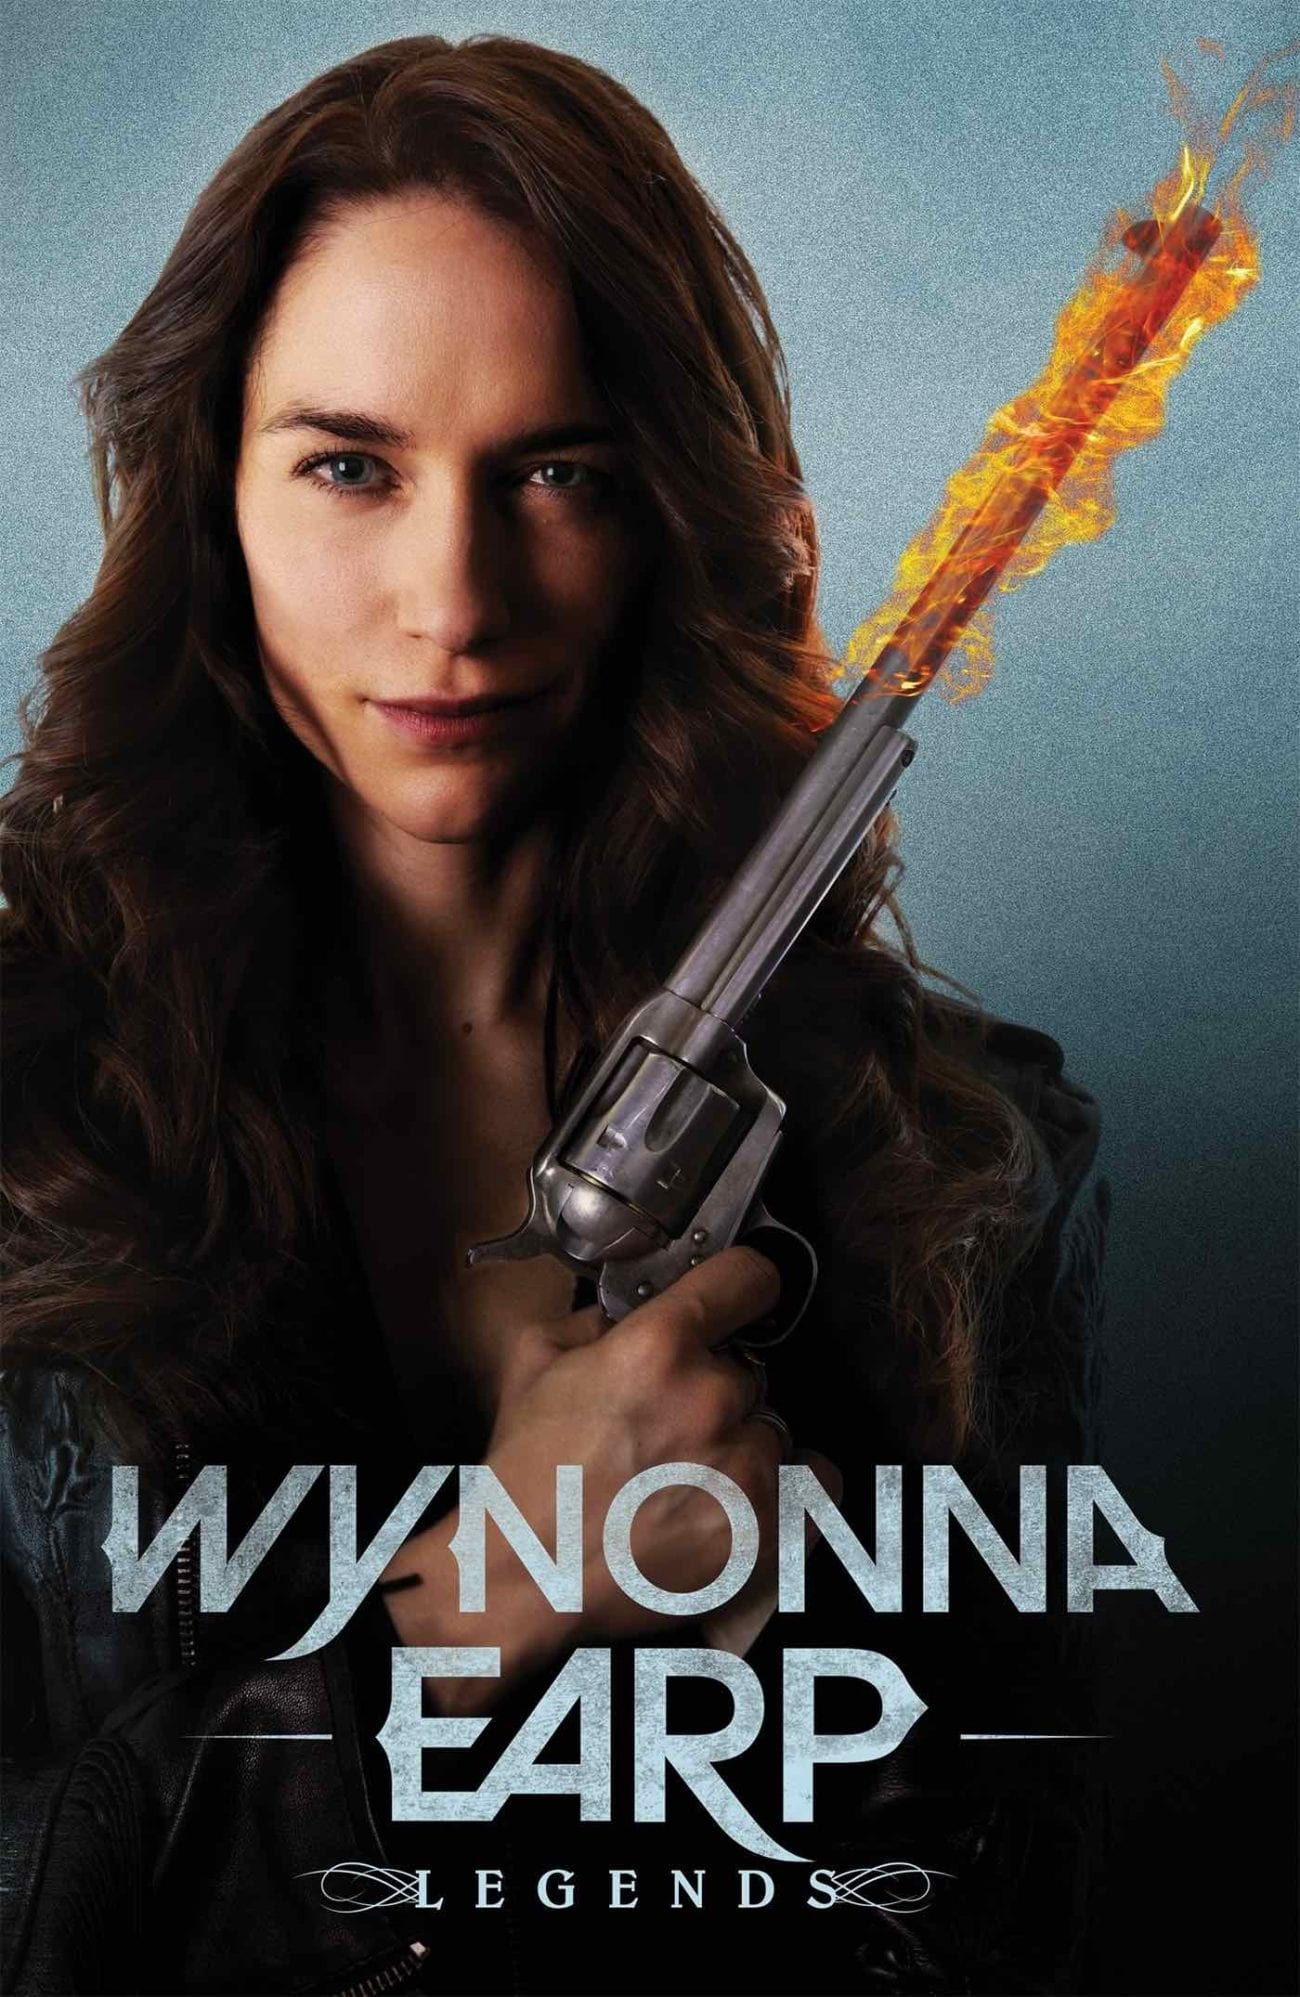 Supernatural teen shows like 'Wynonna Earp' walk a fine line: respecting without pandering, inspiring yet scaring – and packed to the rafters with hotties.